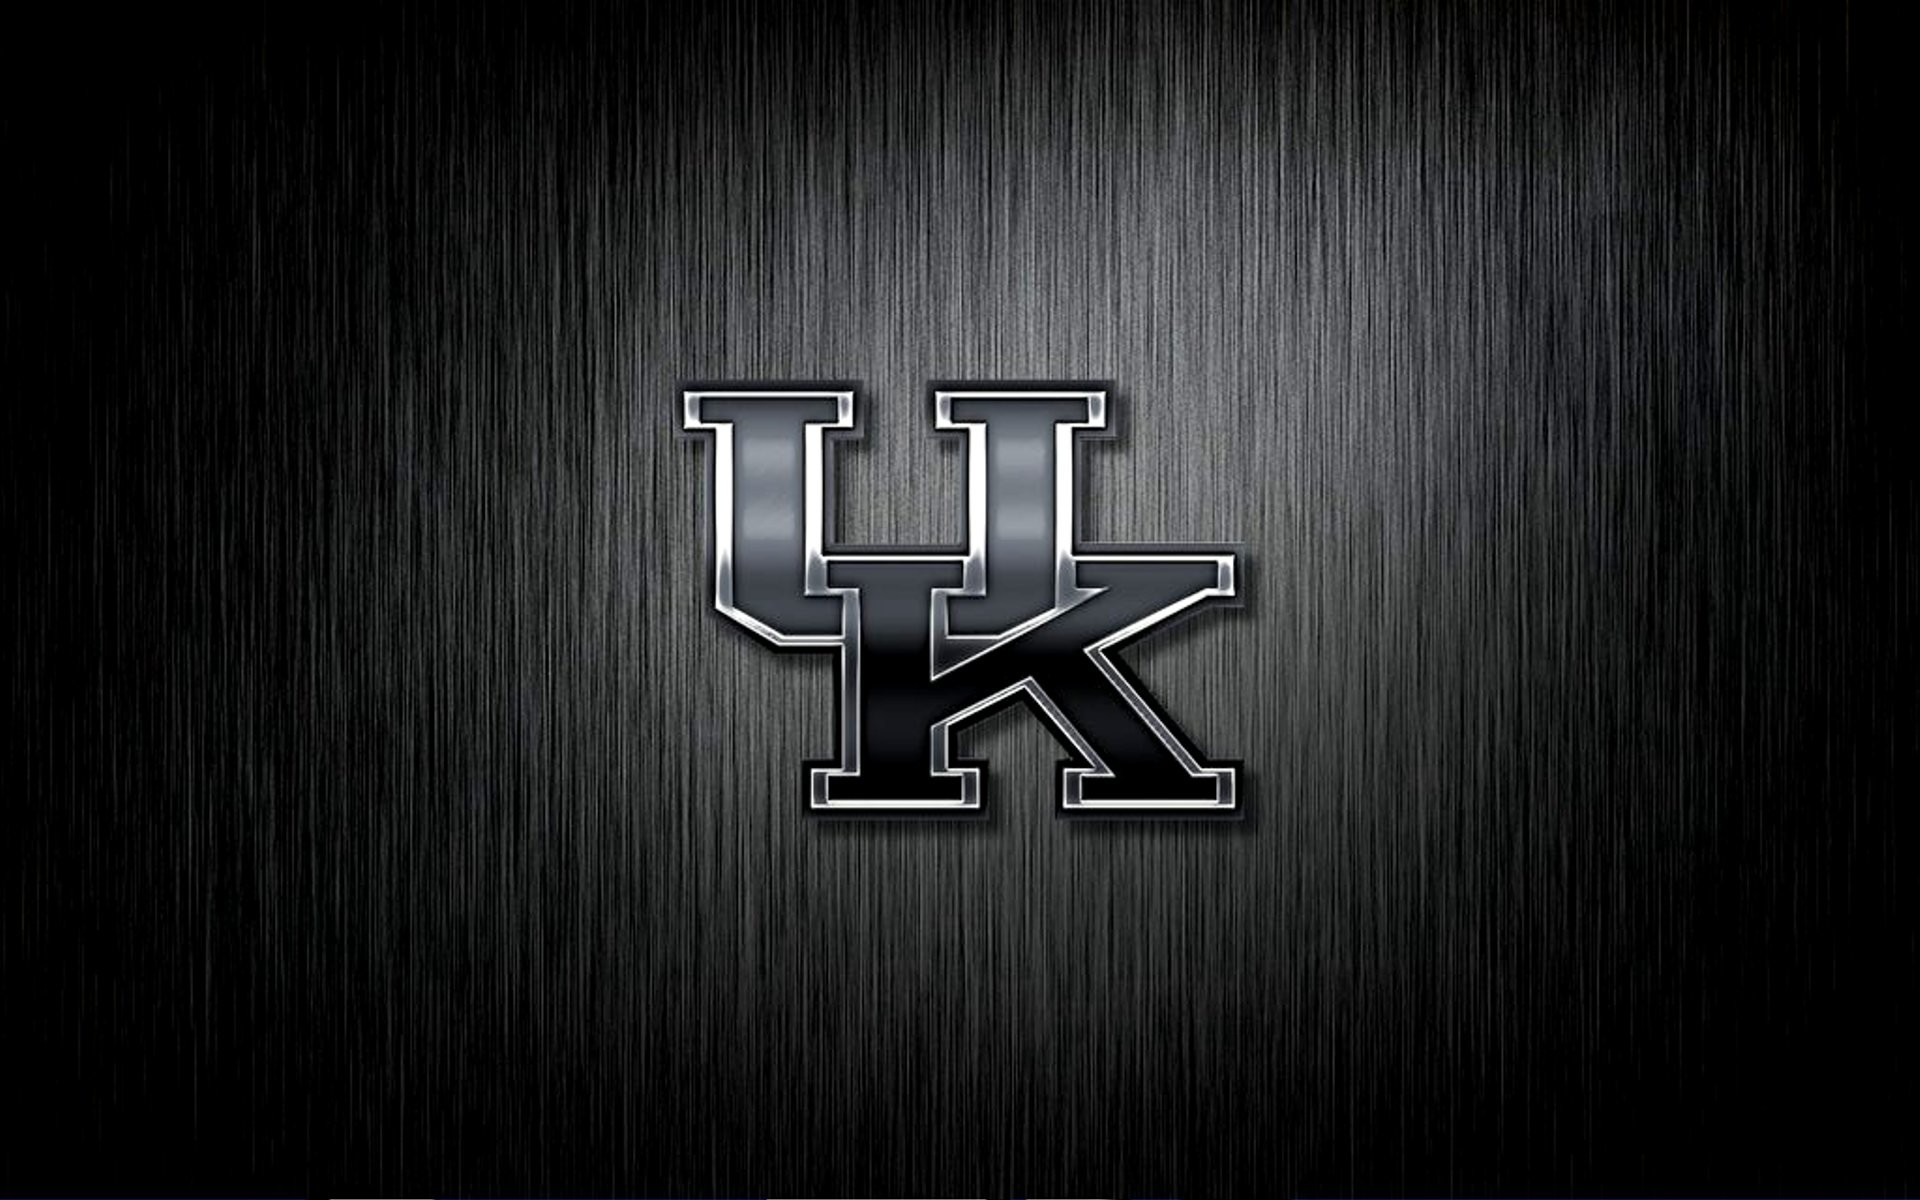 Uk Basketball: Kentucky Wildcats IPhone Wallpaper (57+ Images